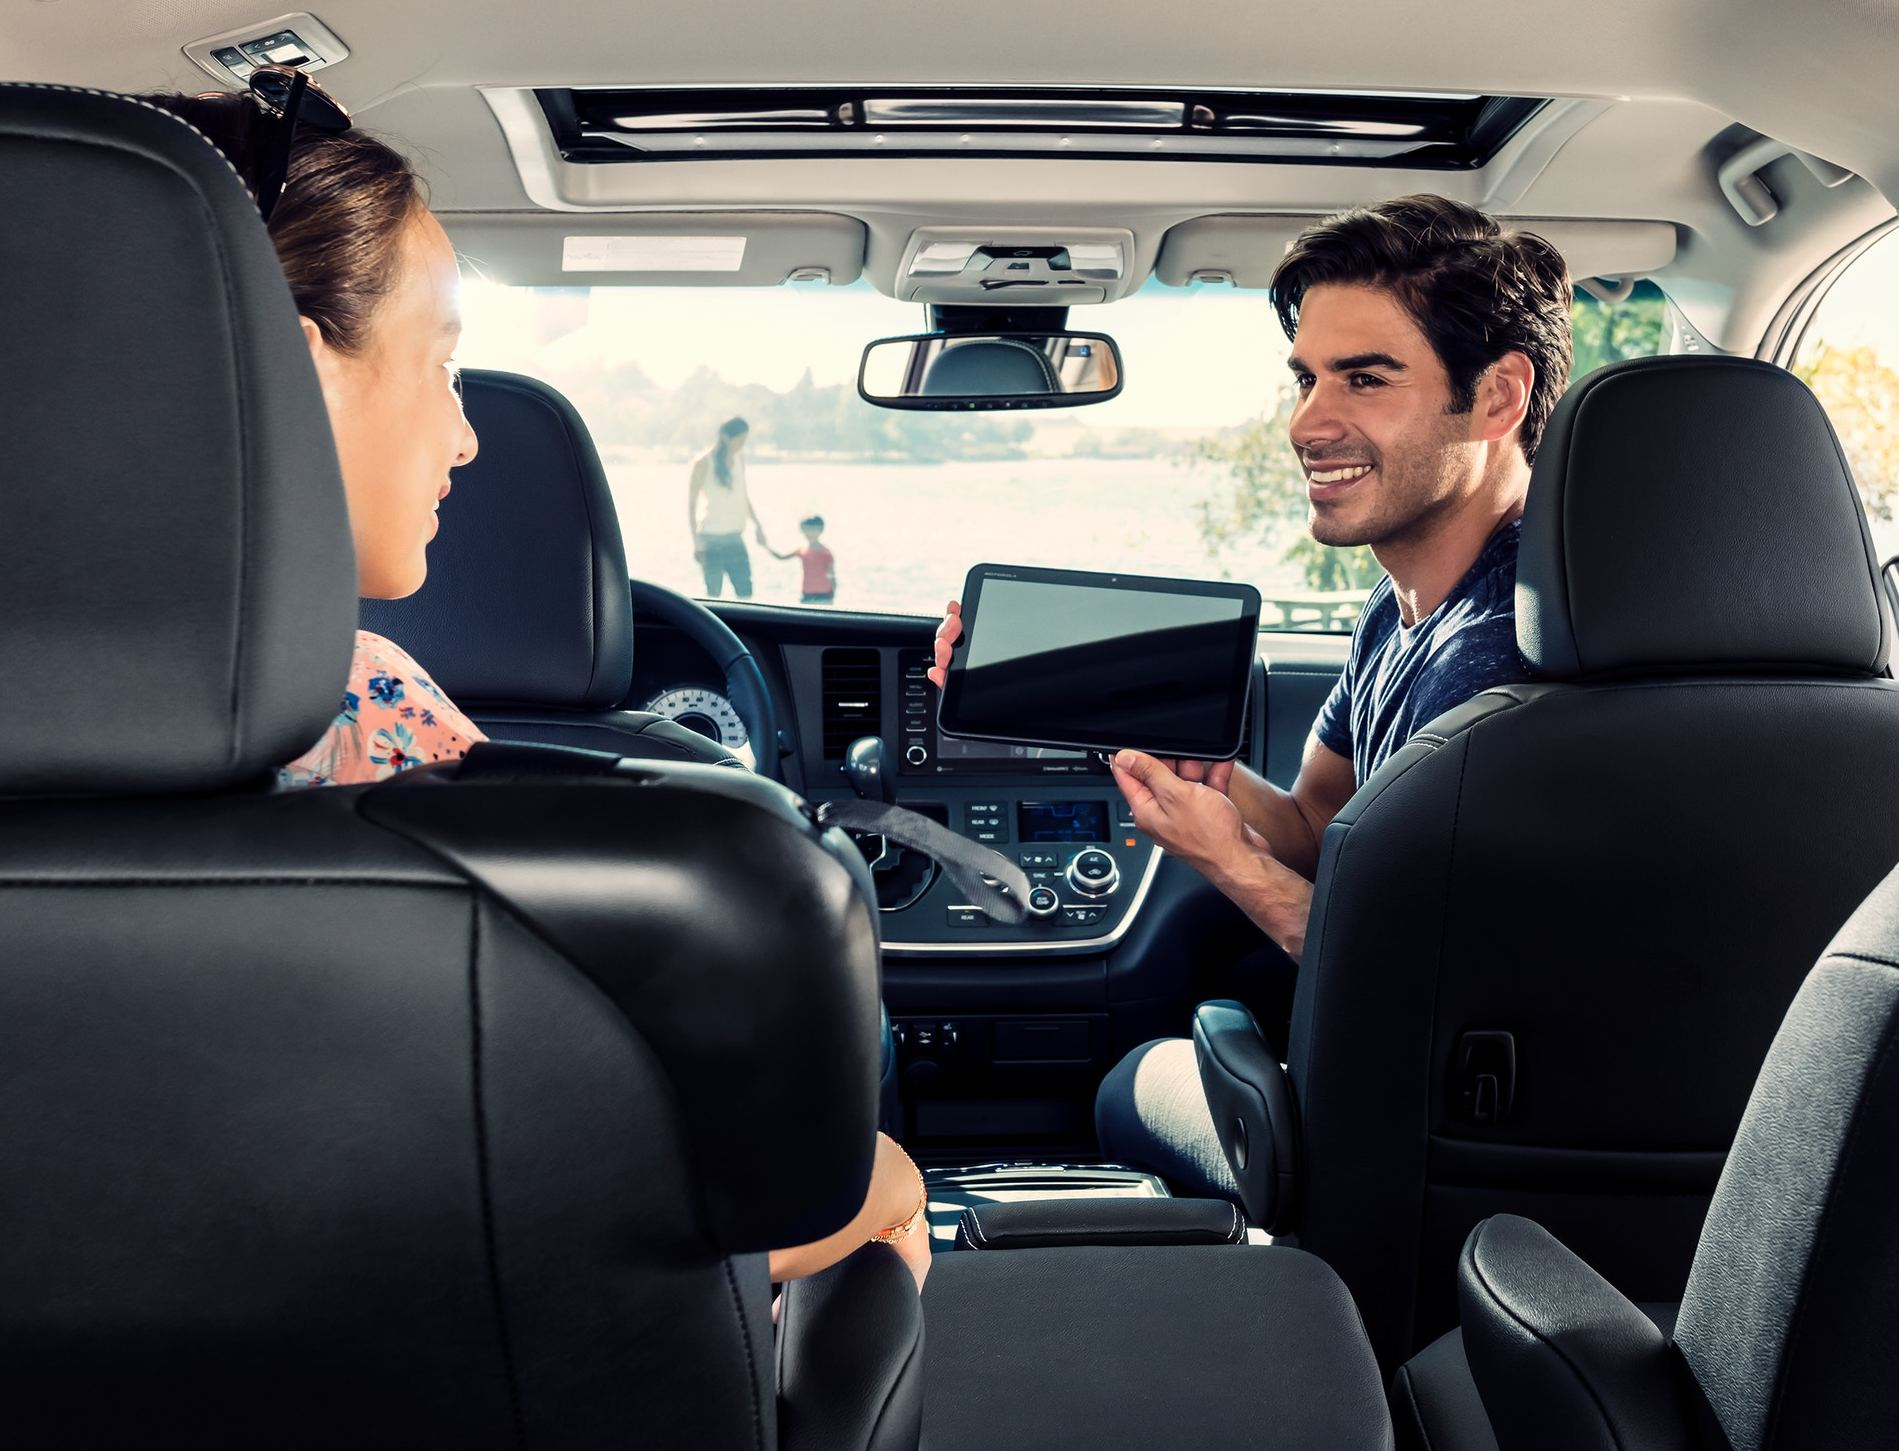 The Secure Cabin of the 2020 Toyota Sienna